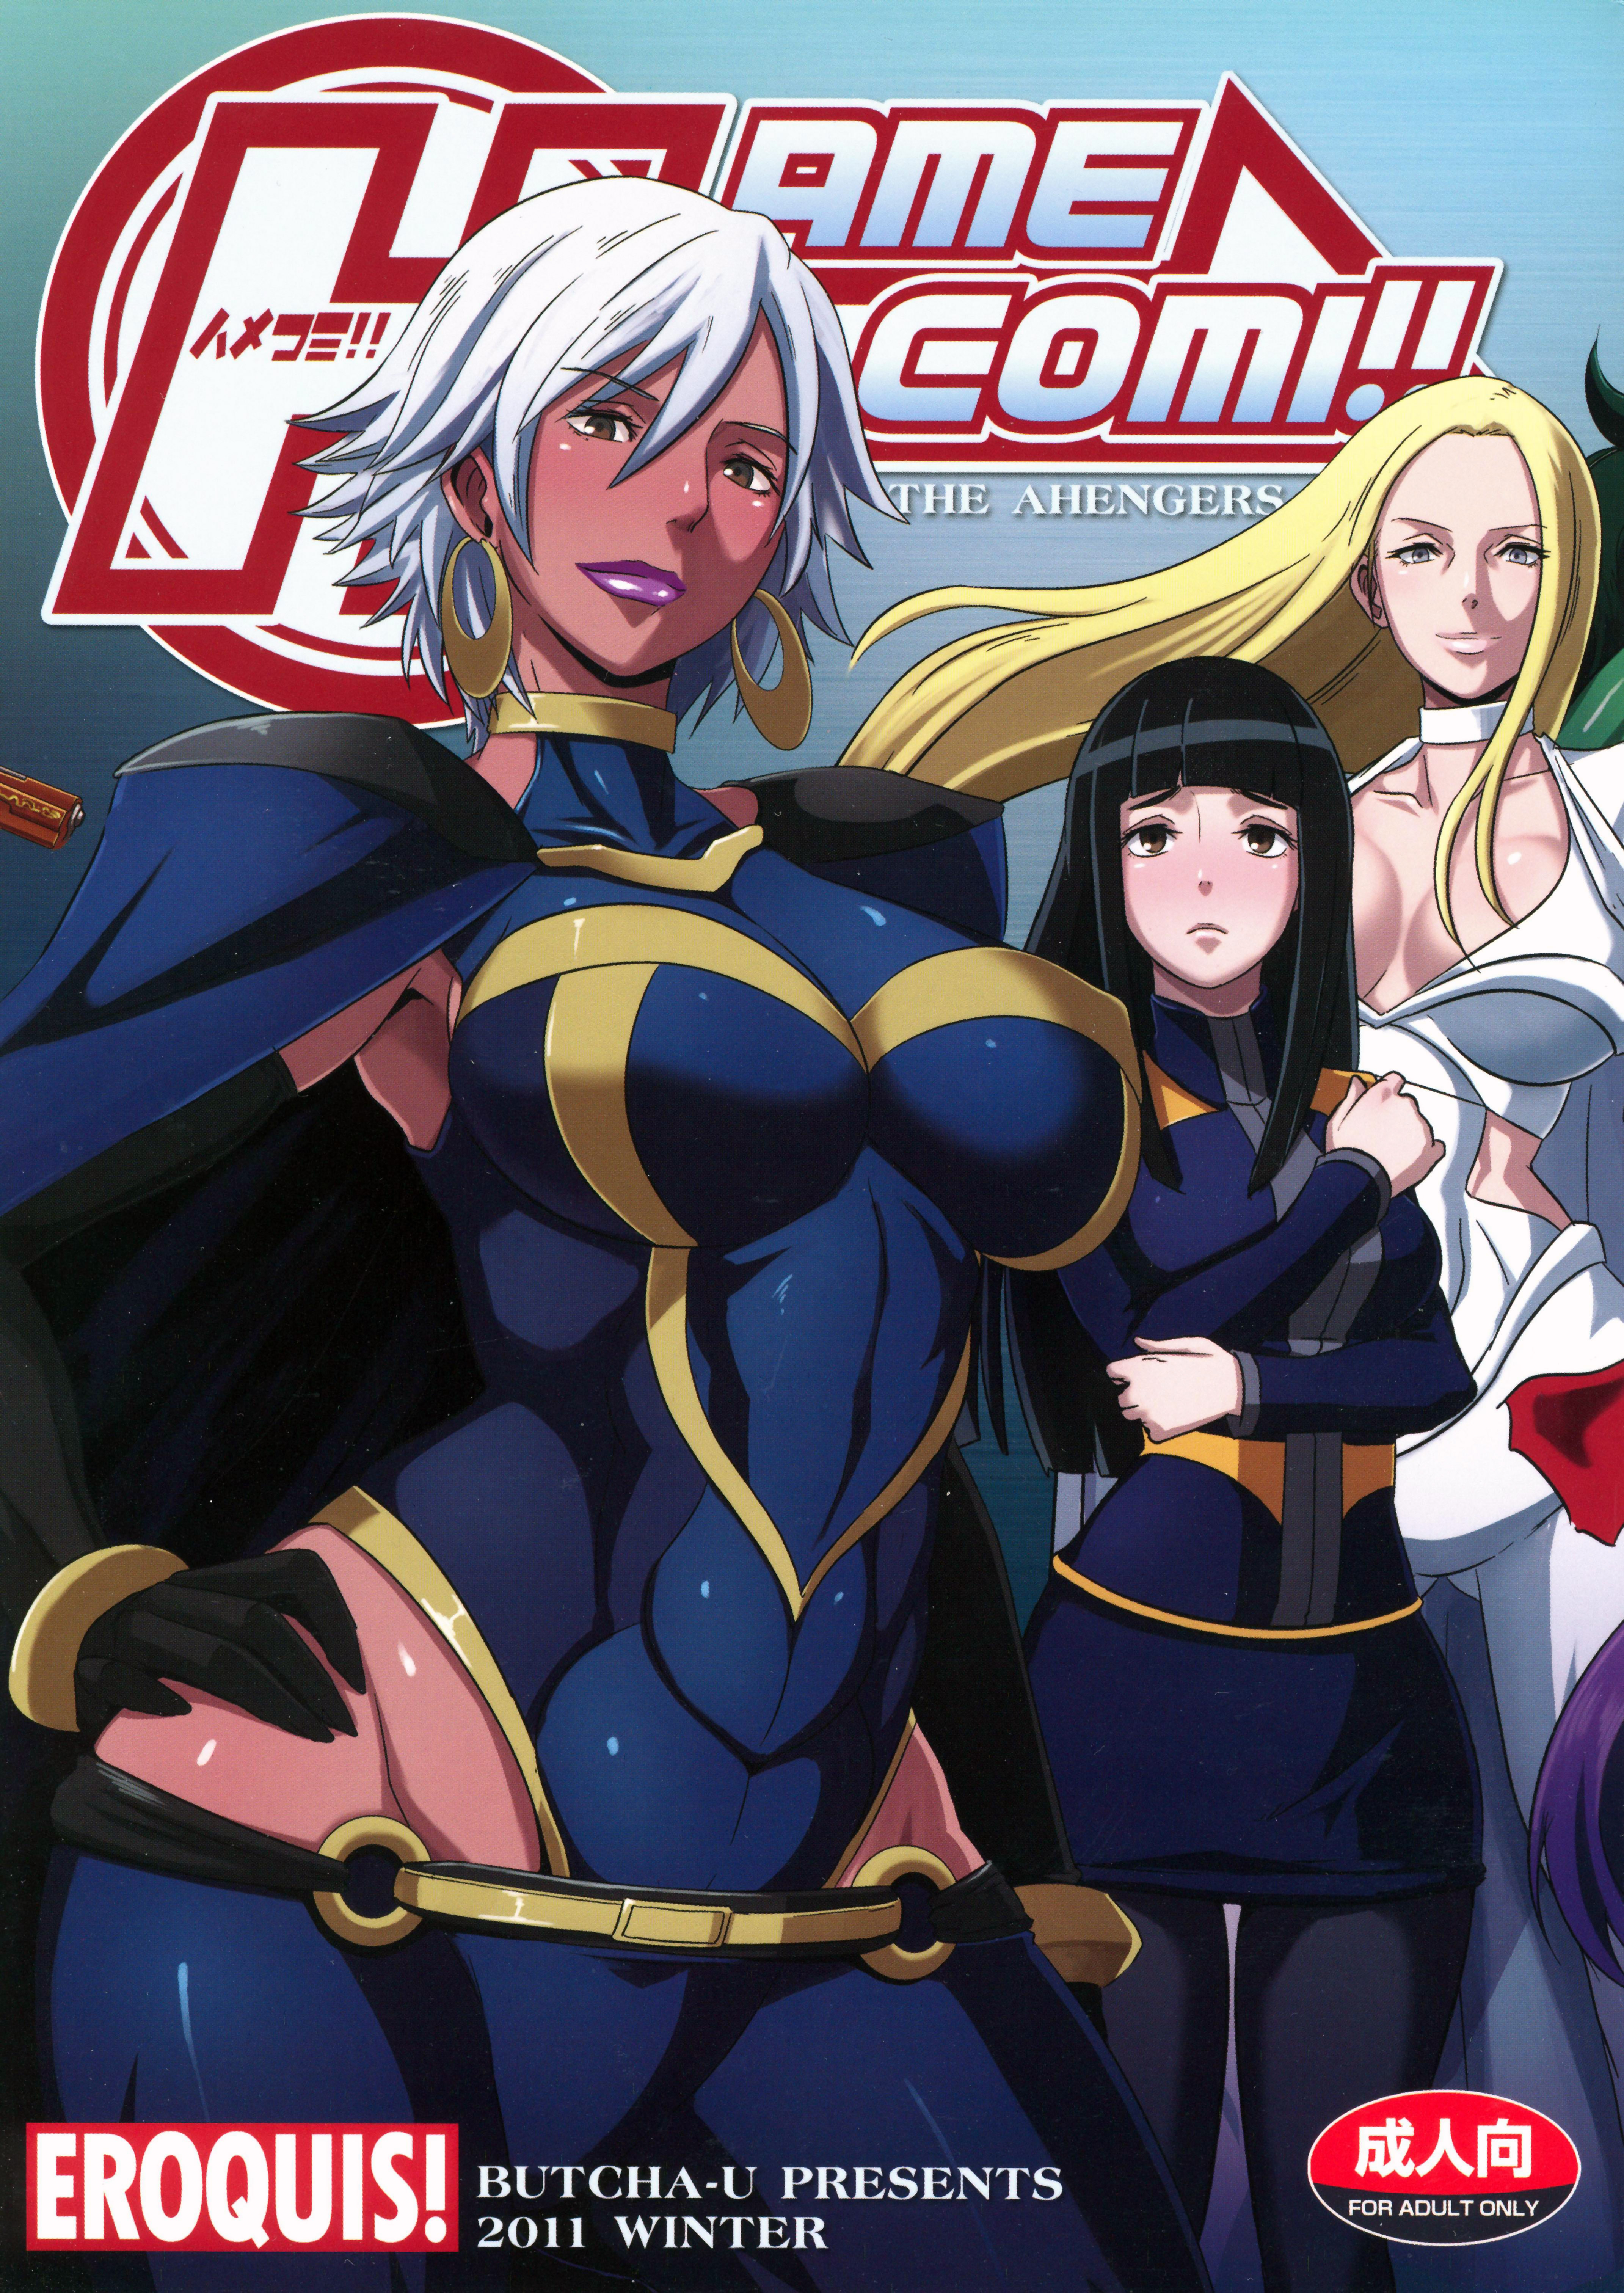 Goodcomix.tk Crossover Heroes - [EROQUIS! (Various)] - Hamecomi!! The Ahengers